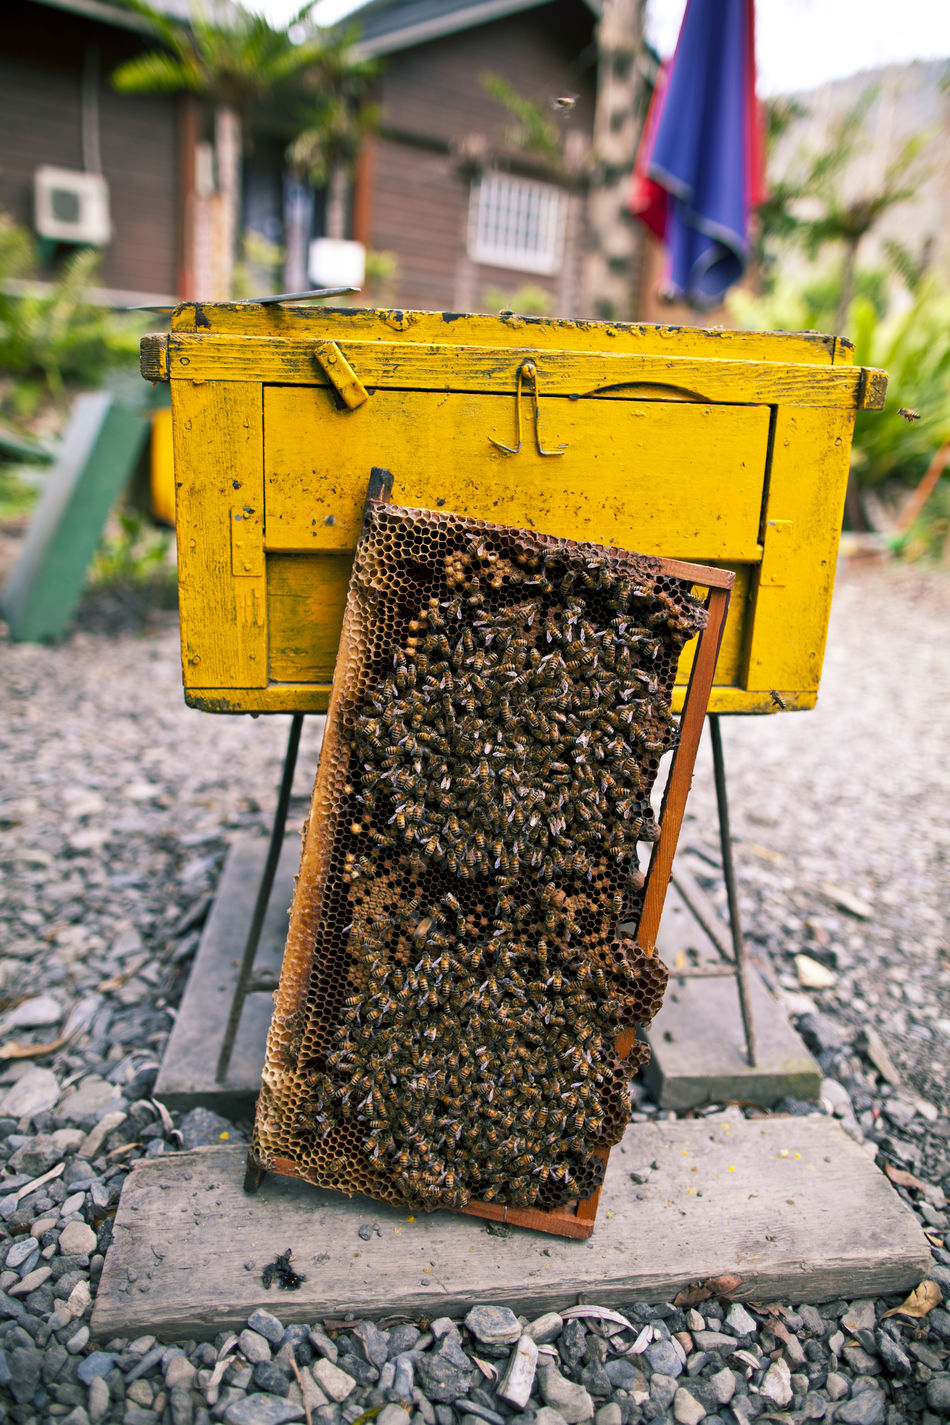 Architecture Beekeeping Bees Built Structure Day Focus On Foreground Honey HoneyBee Hygiene No People Outdoors